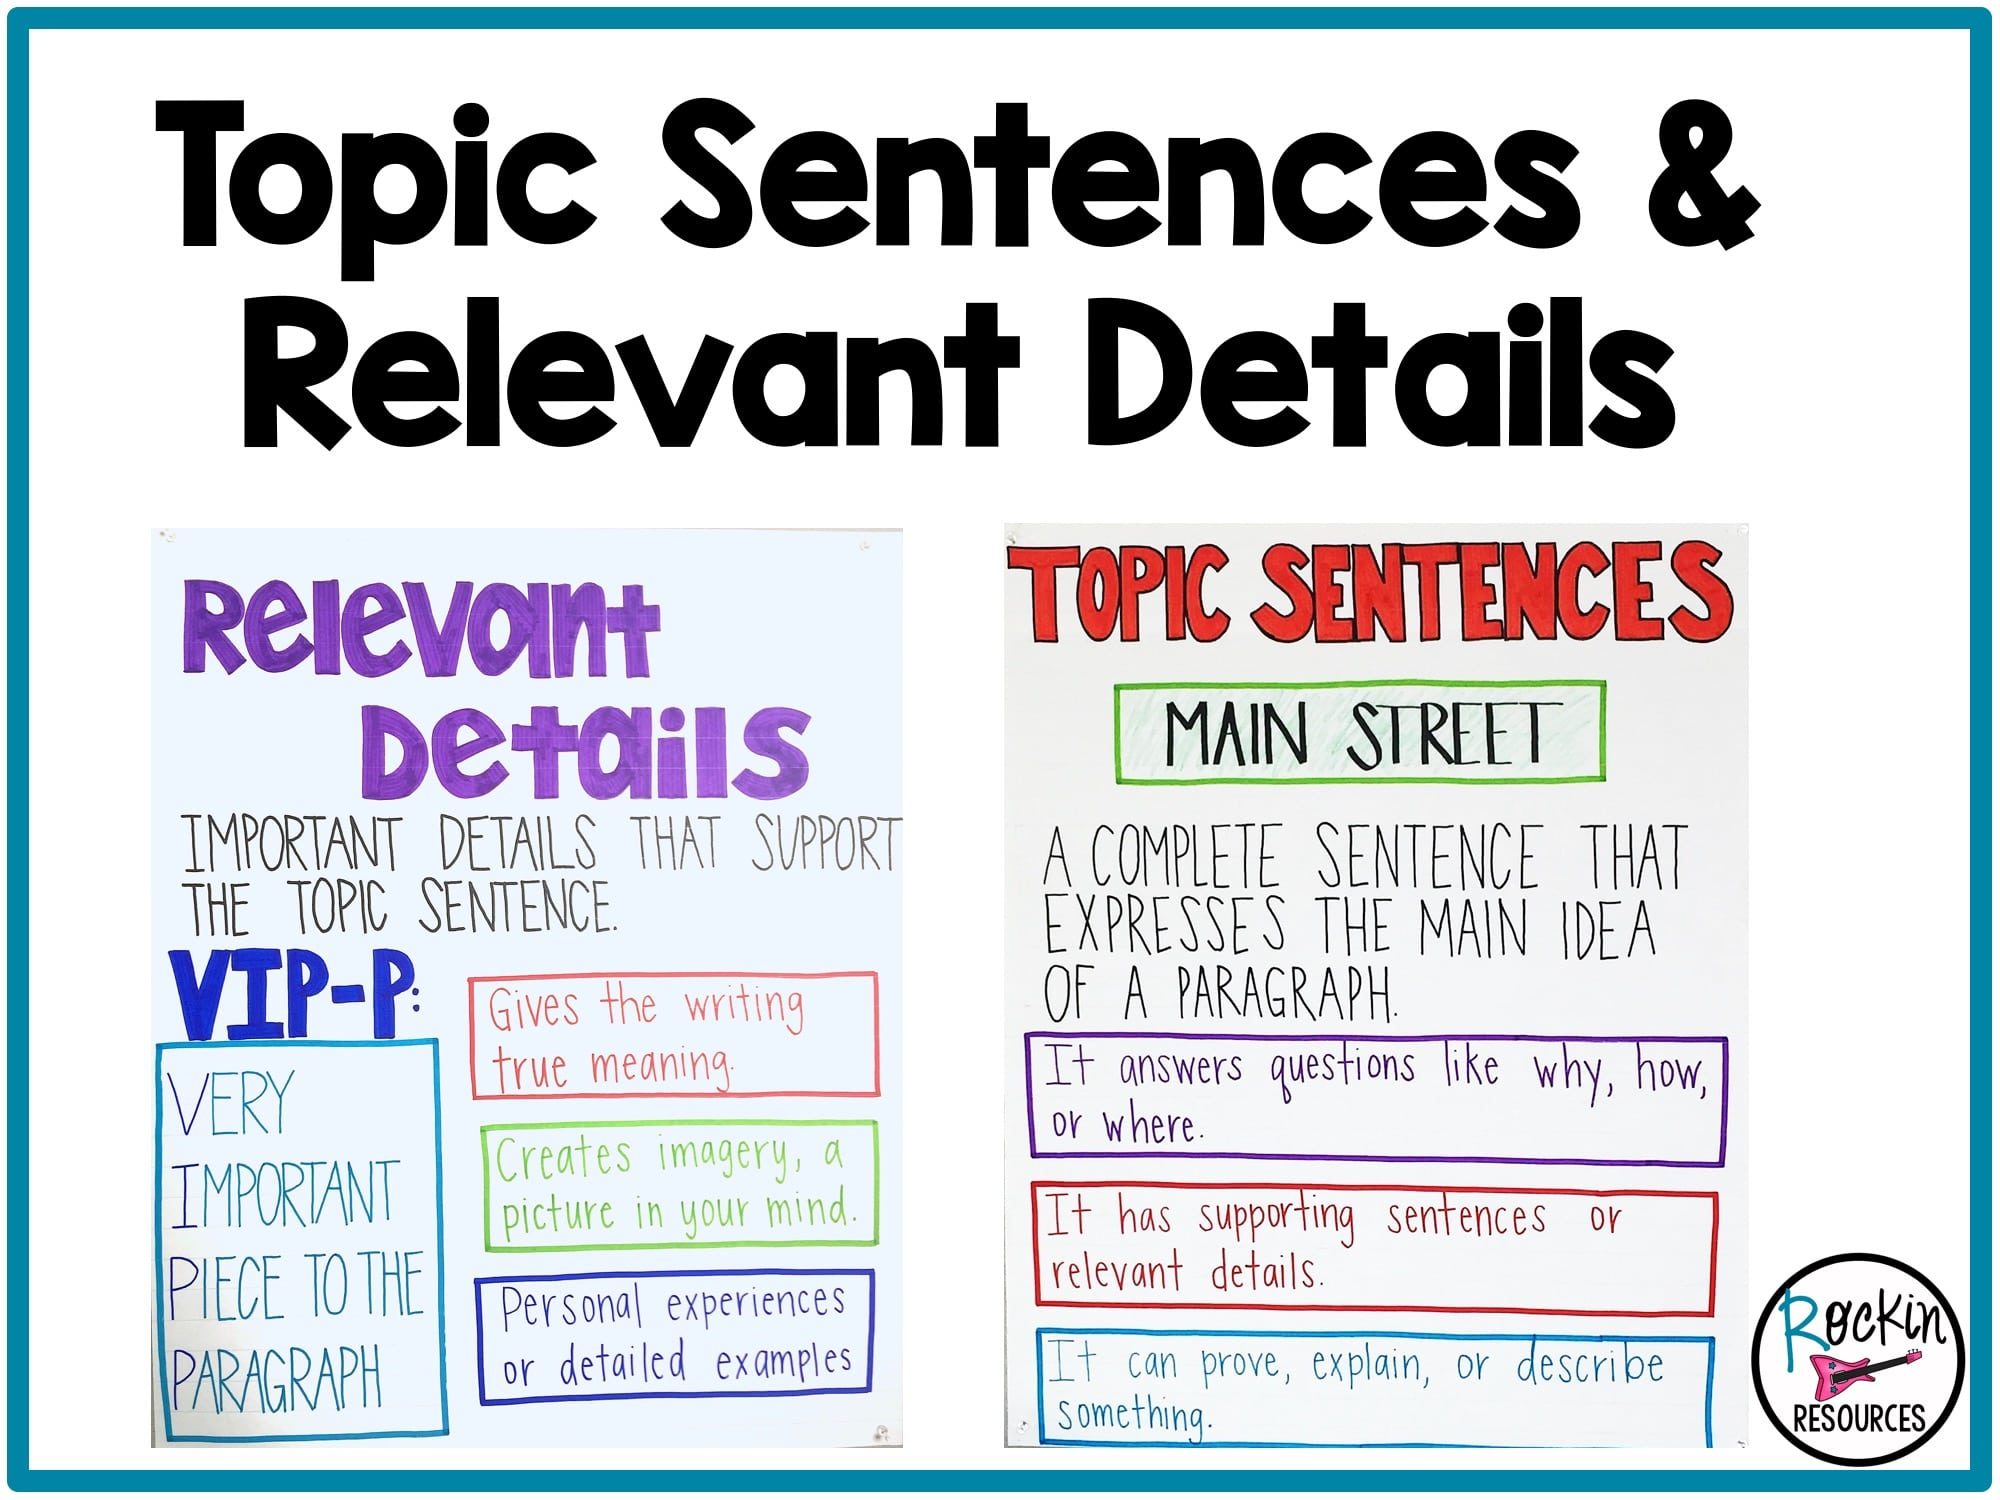 Topic Sentences and Relevant Details | Rockin Resources